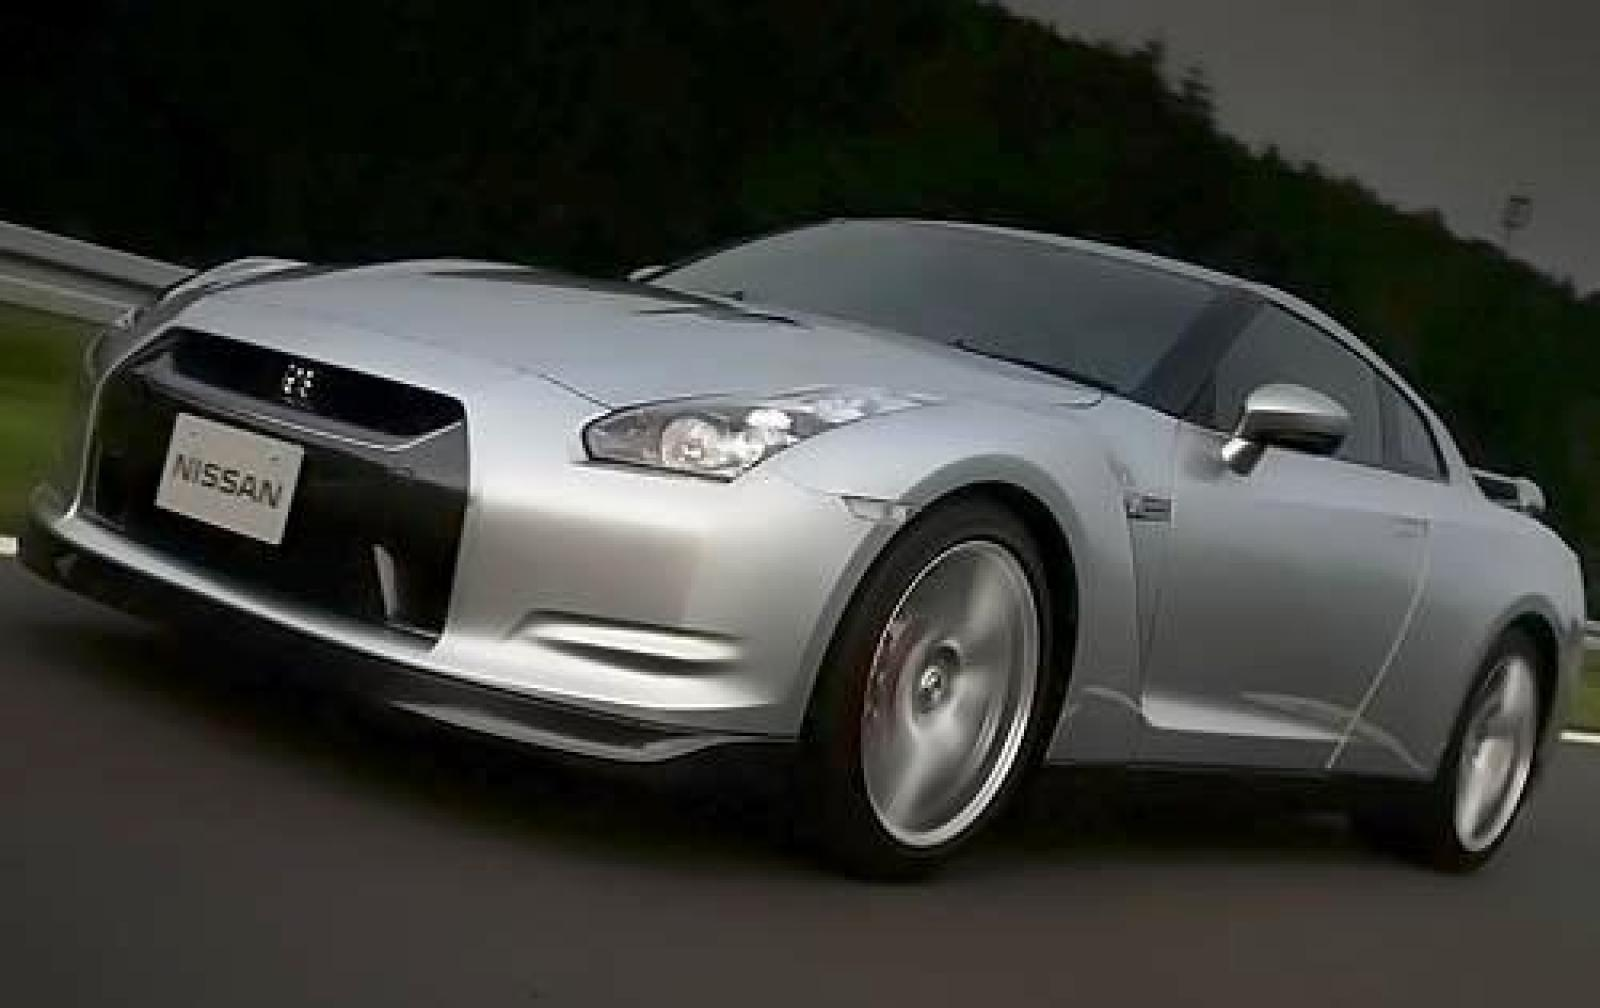 2010 nissan gt r information and photos zombiedrive. Black Bedroom Furniture Sets. Home Design Ideas